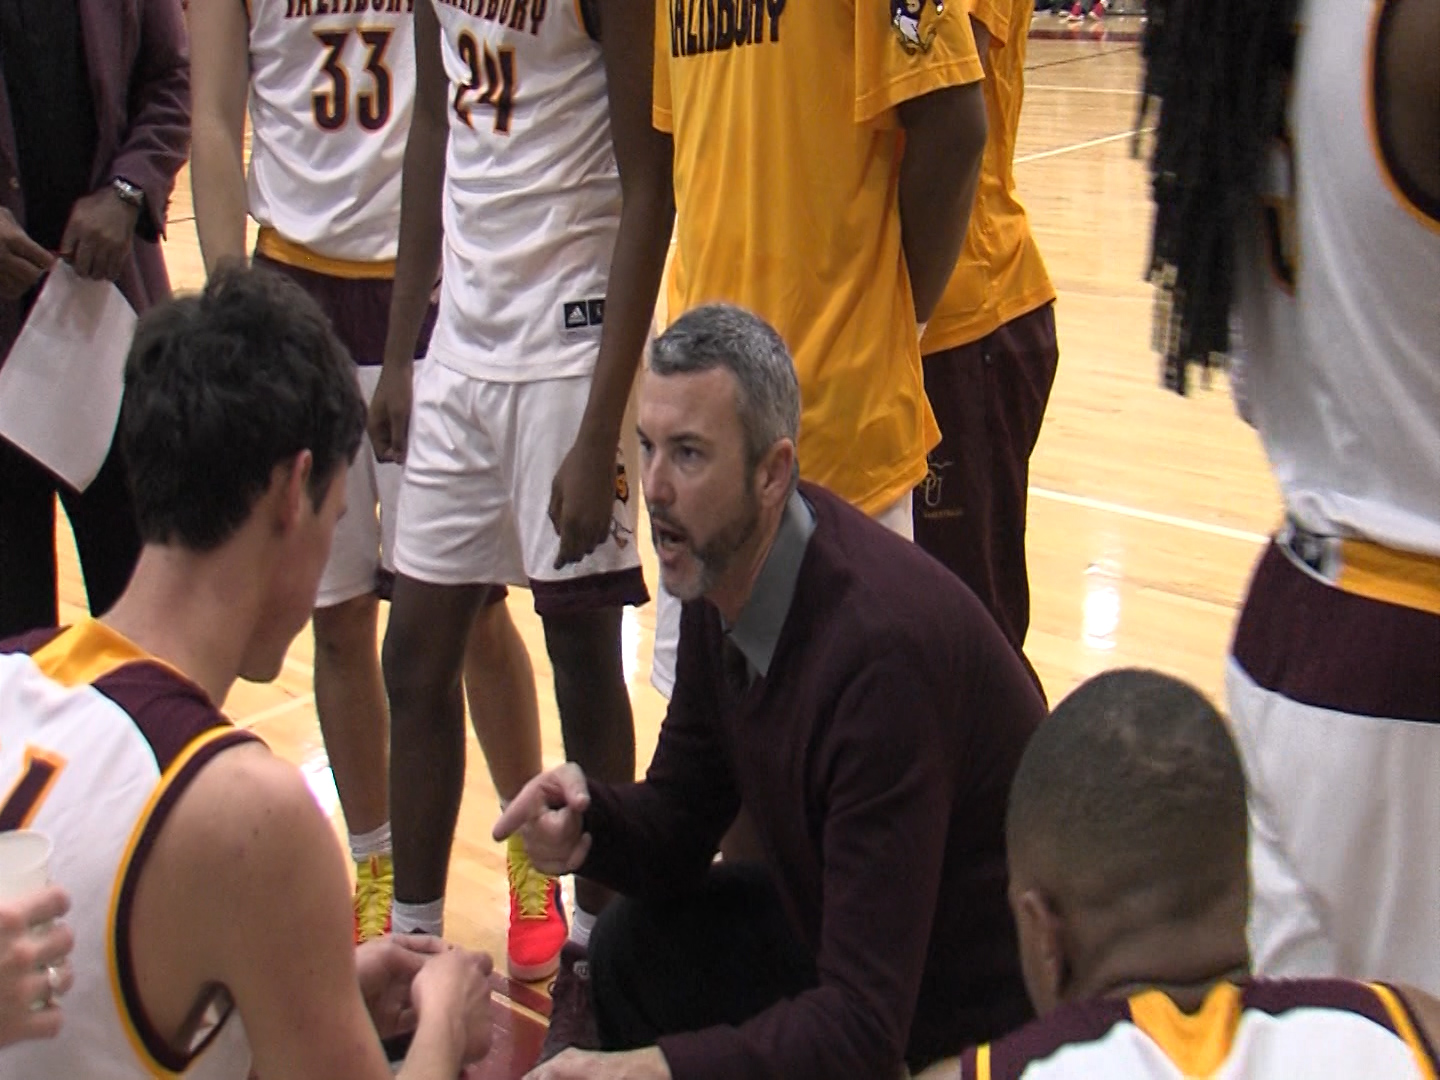 Salisbury Falls To Number 24 In Latest Division III Poll